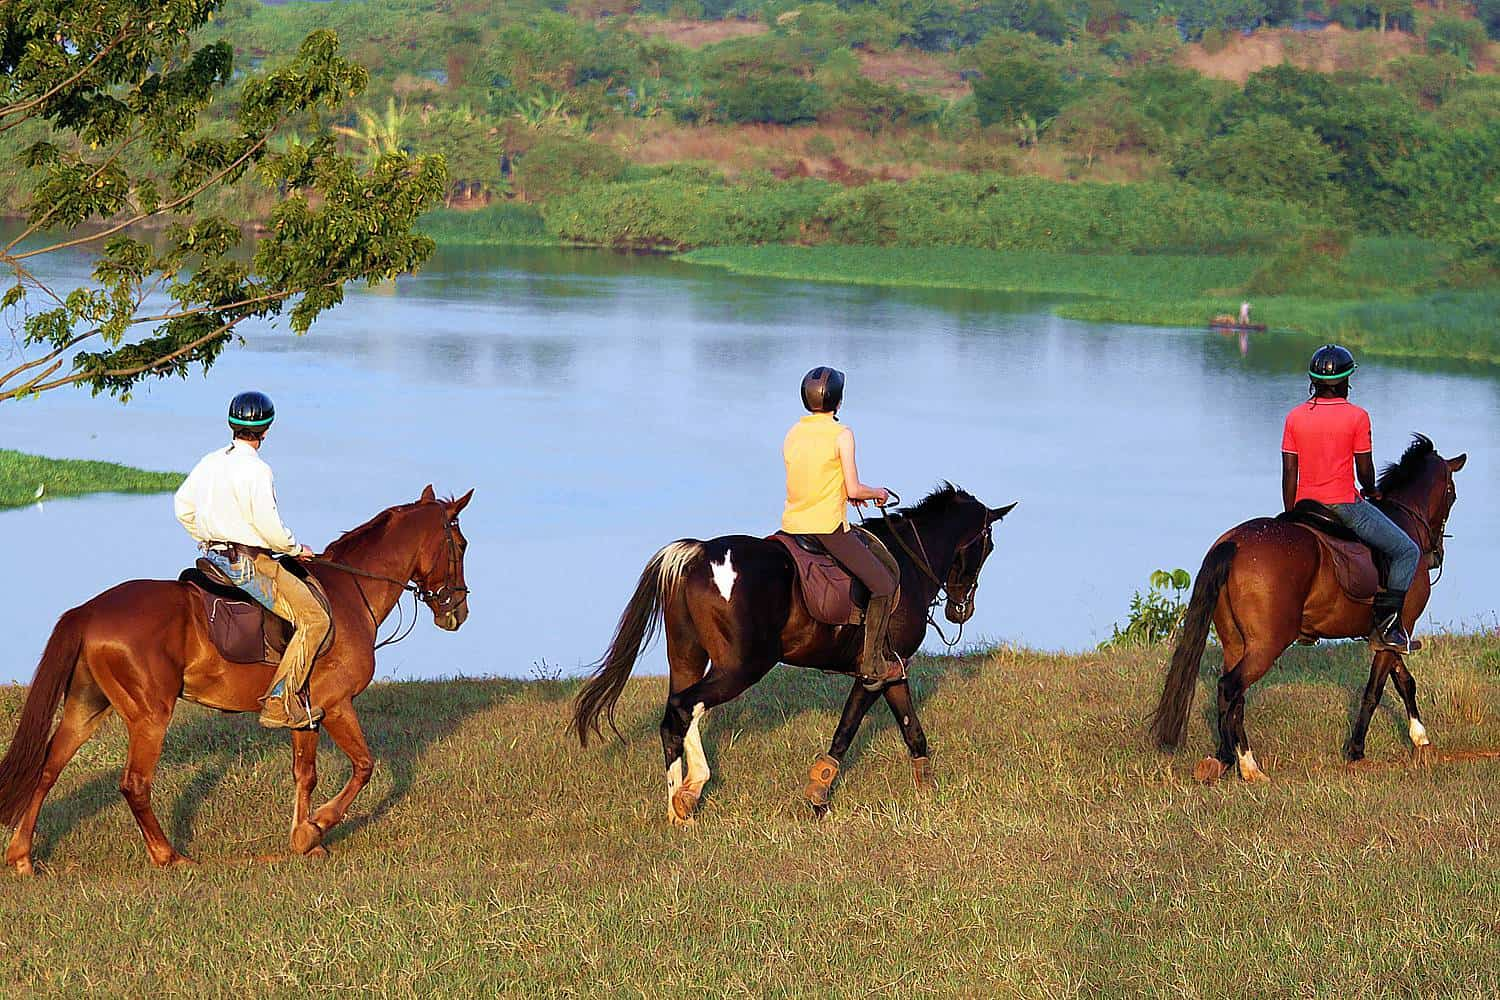 What Are The Experiences In Jinja - Nile River